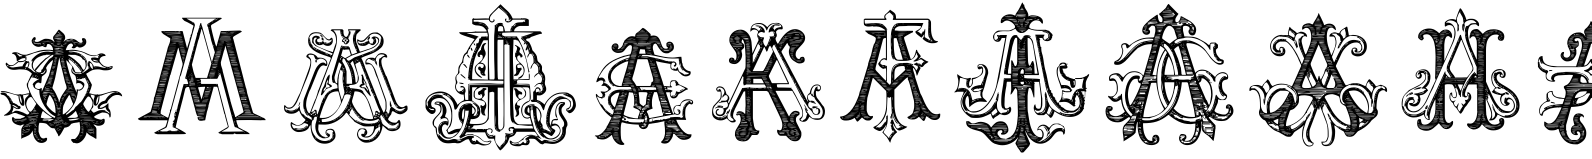 Intellecta Monograms AAAS Font